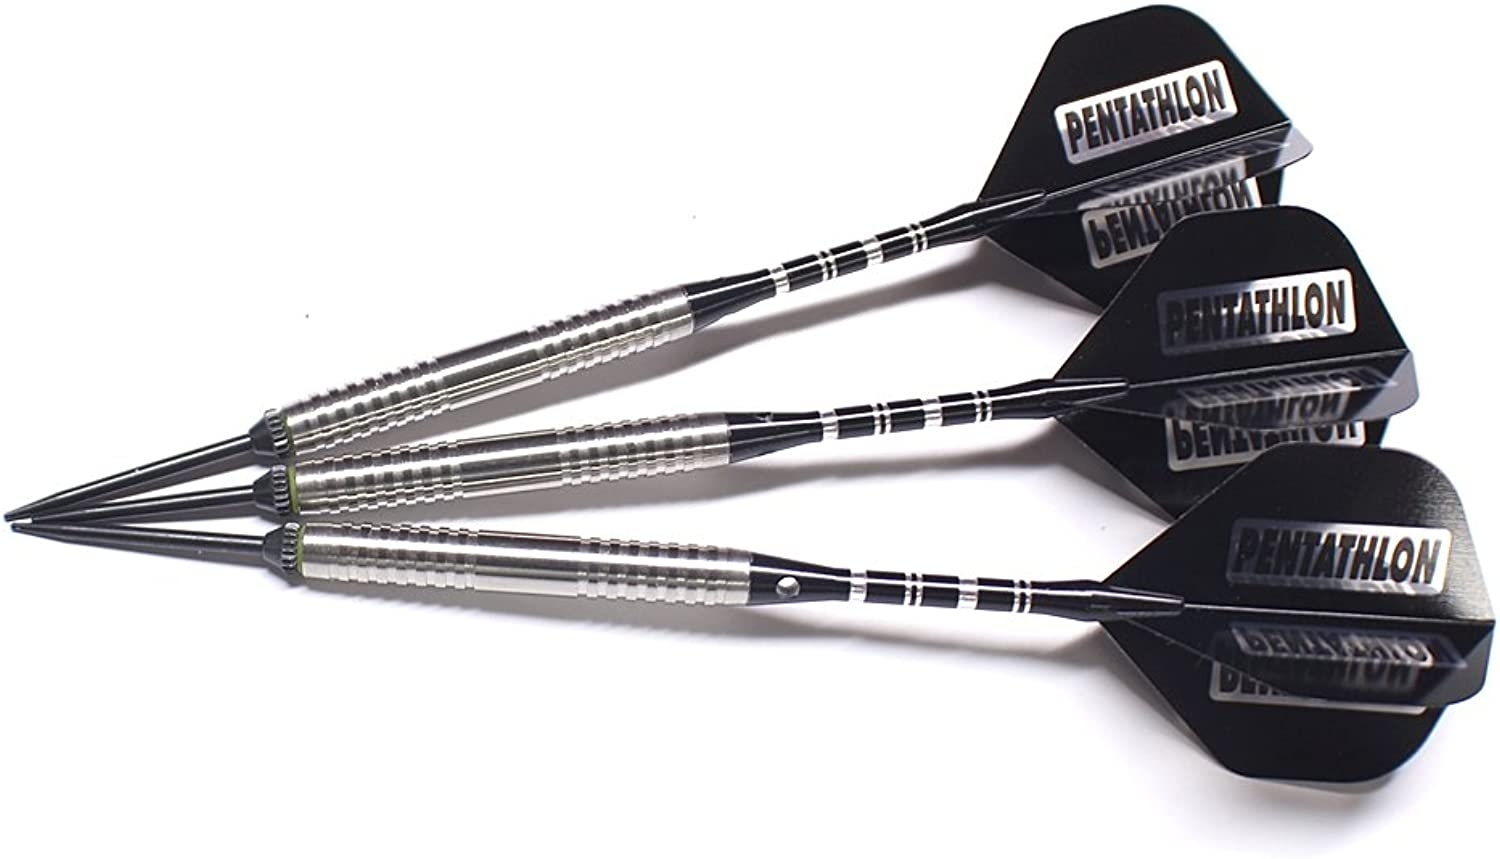 US DartsViper Rd Silverline 21 Grams Style 2, 80% Tungsten Darts, No-Bounce, Moveable Point Darts, Fitted with Balancepoint ACE Points